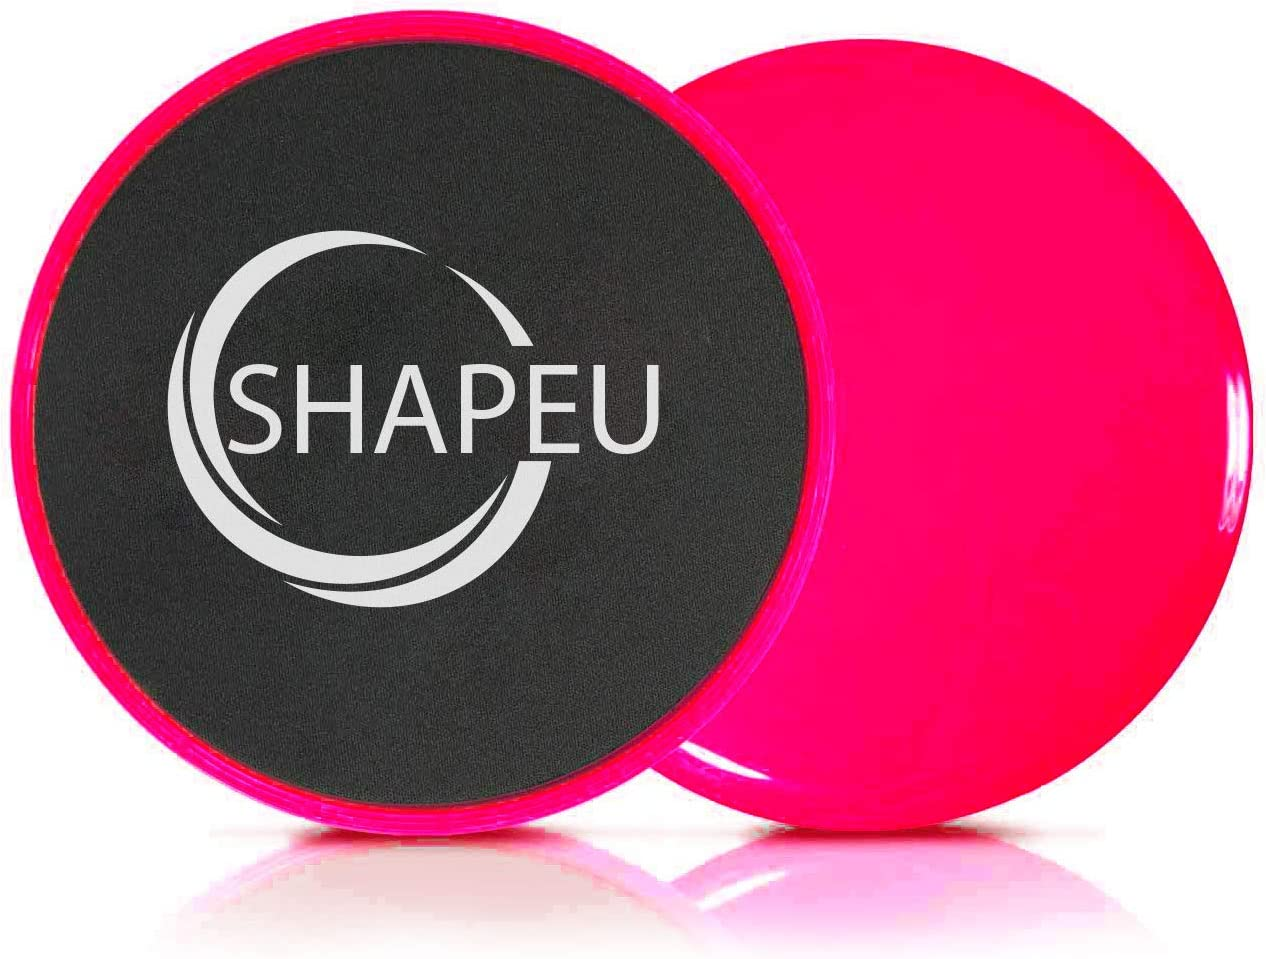 SHAPEU Glide Discs – Dual Sided Core Gliders for Carpet or Hardwood Floors. Abdominal Exercise Equipment with Training Guide Plus Bonus Digital Workouts